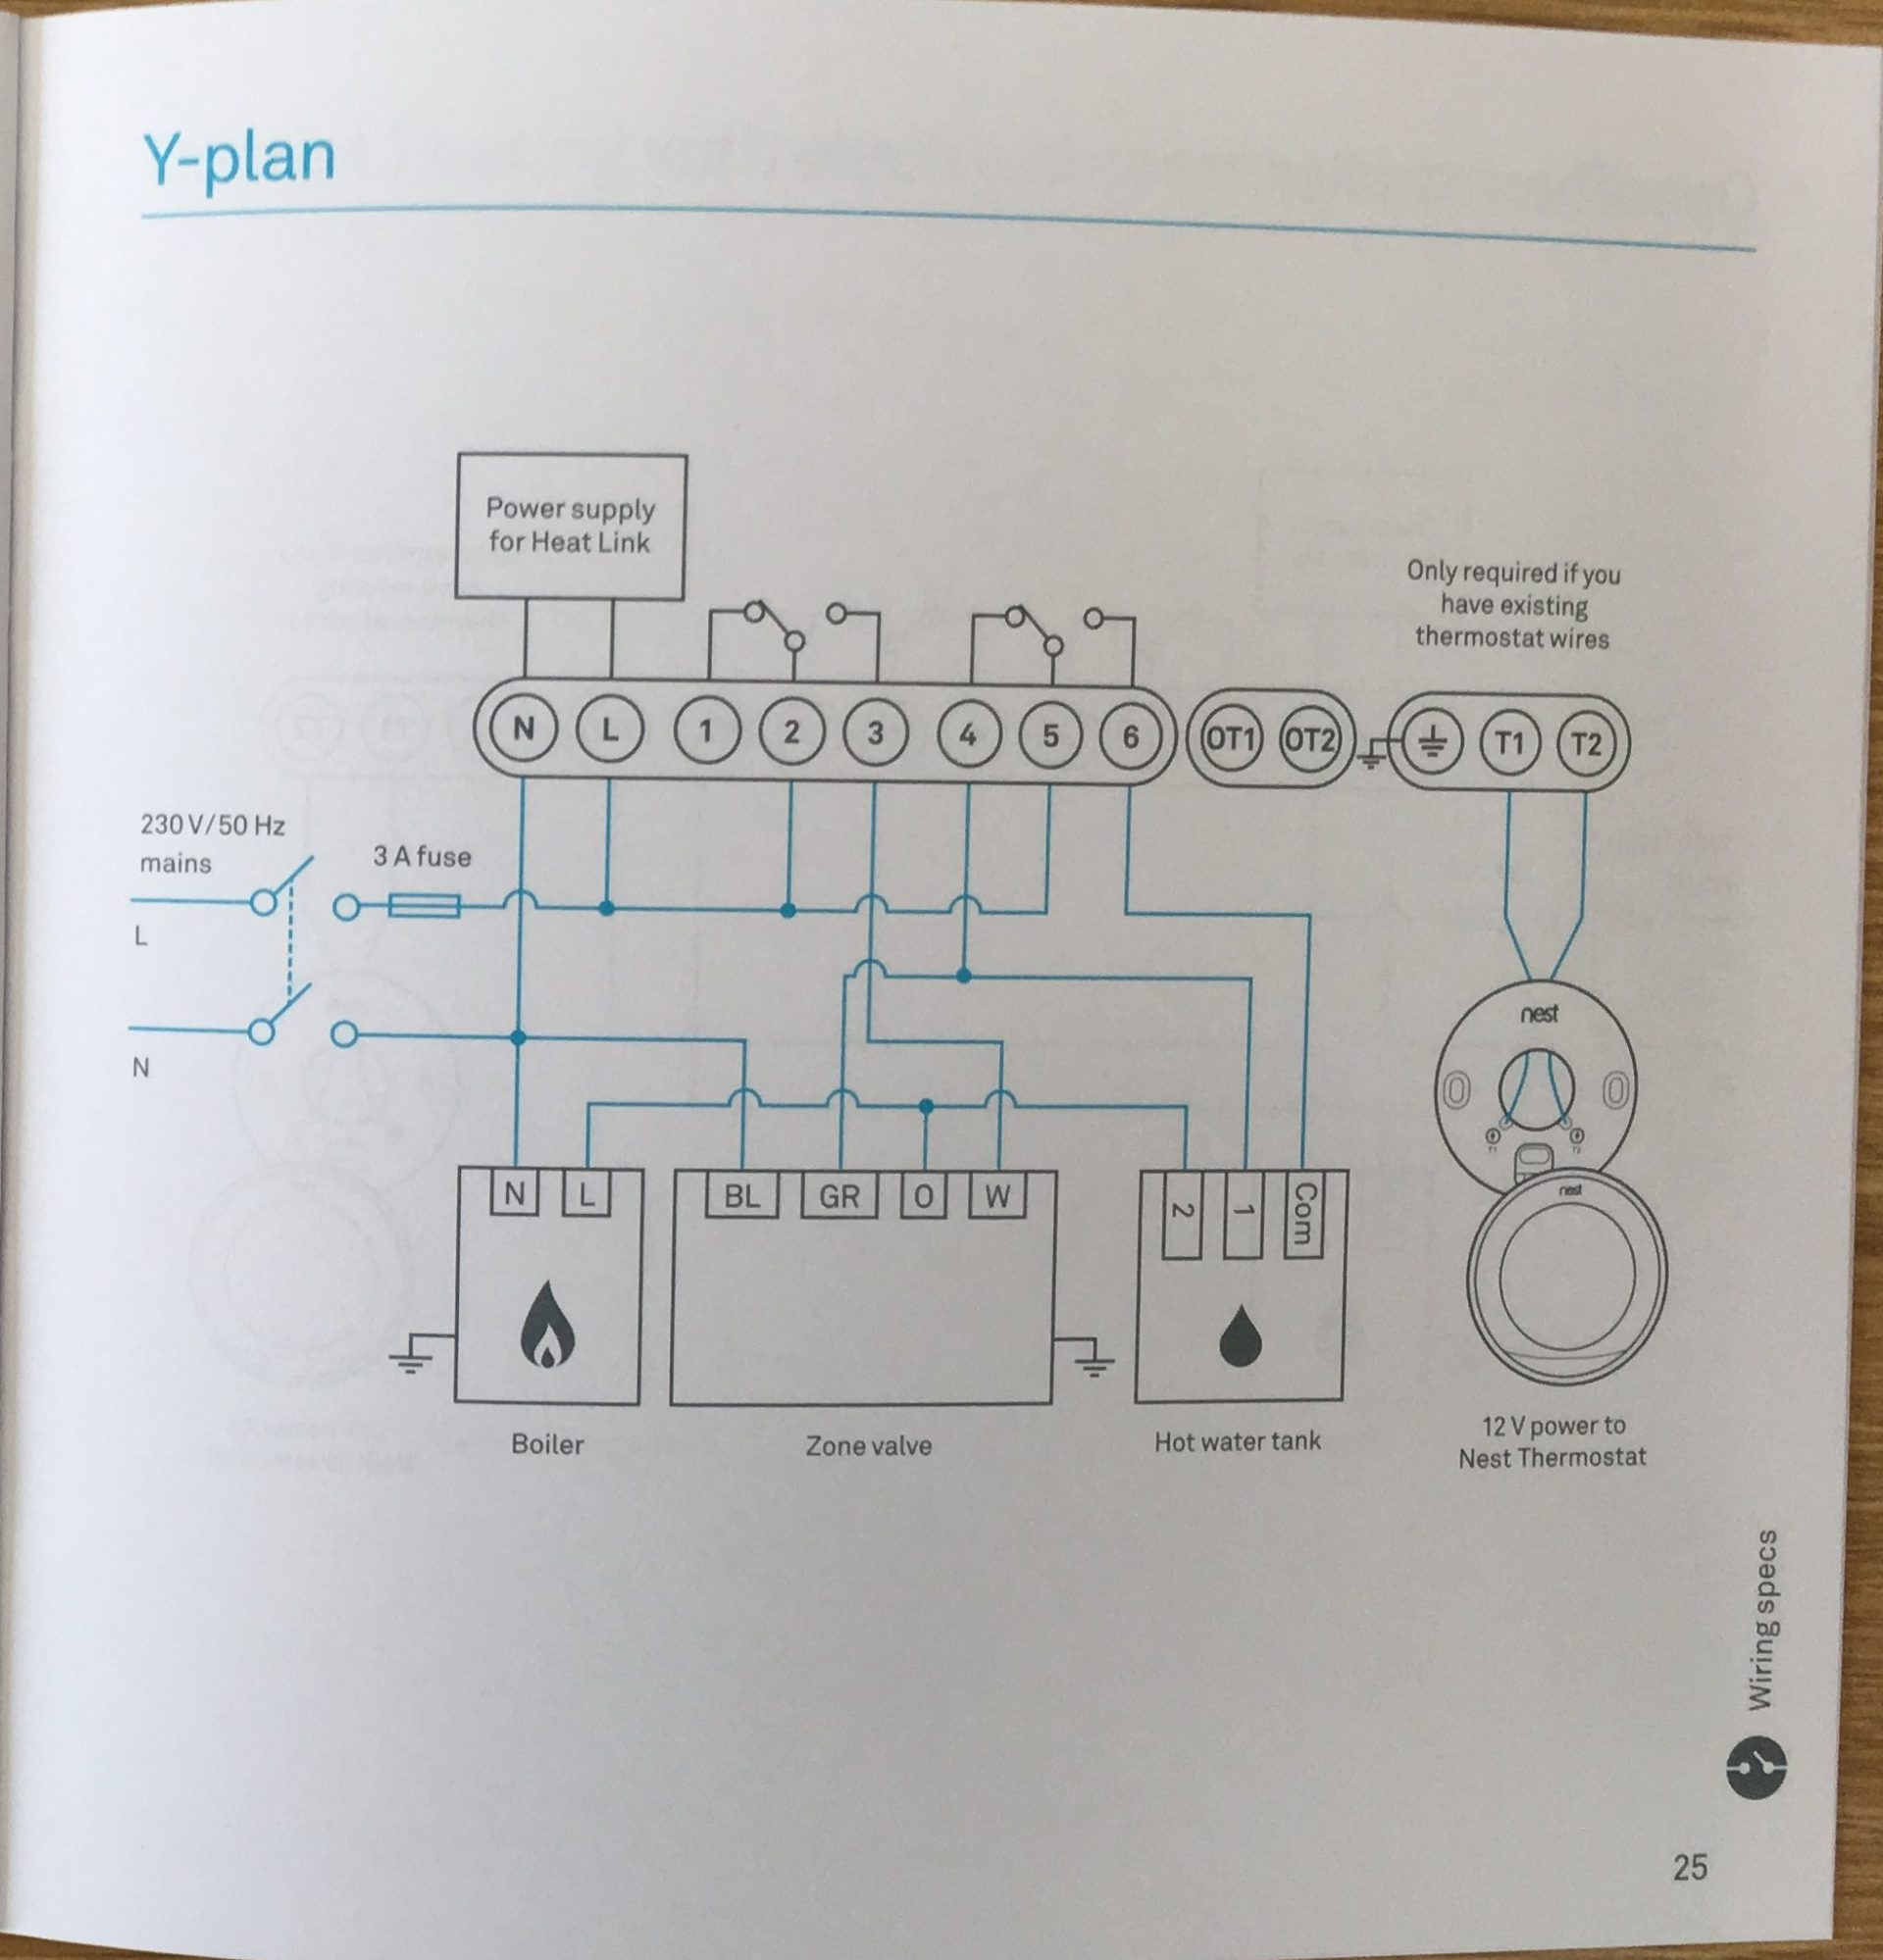 How To Install The Nest Learning Thermostat (3Rd Gen) In A Y-Plan - 3Rd Gen Nest Wiring Diagram Pro